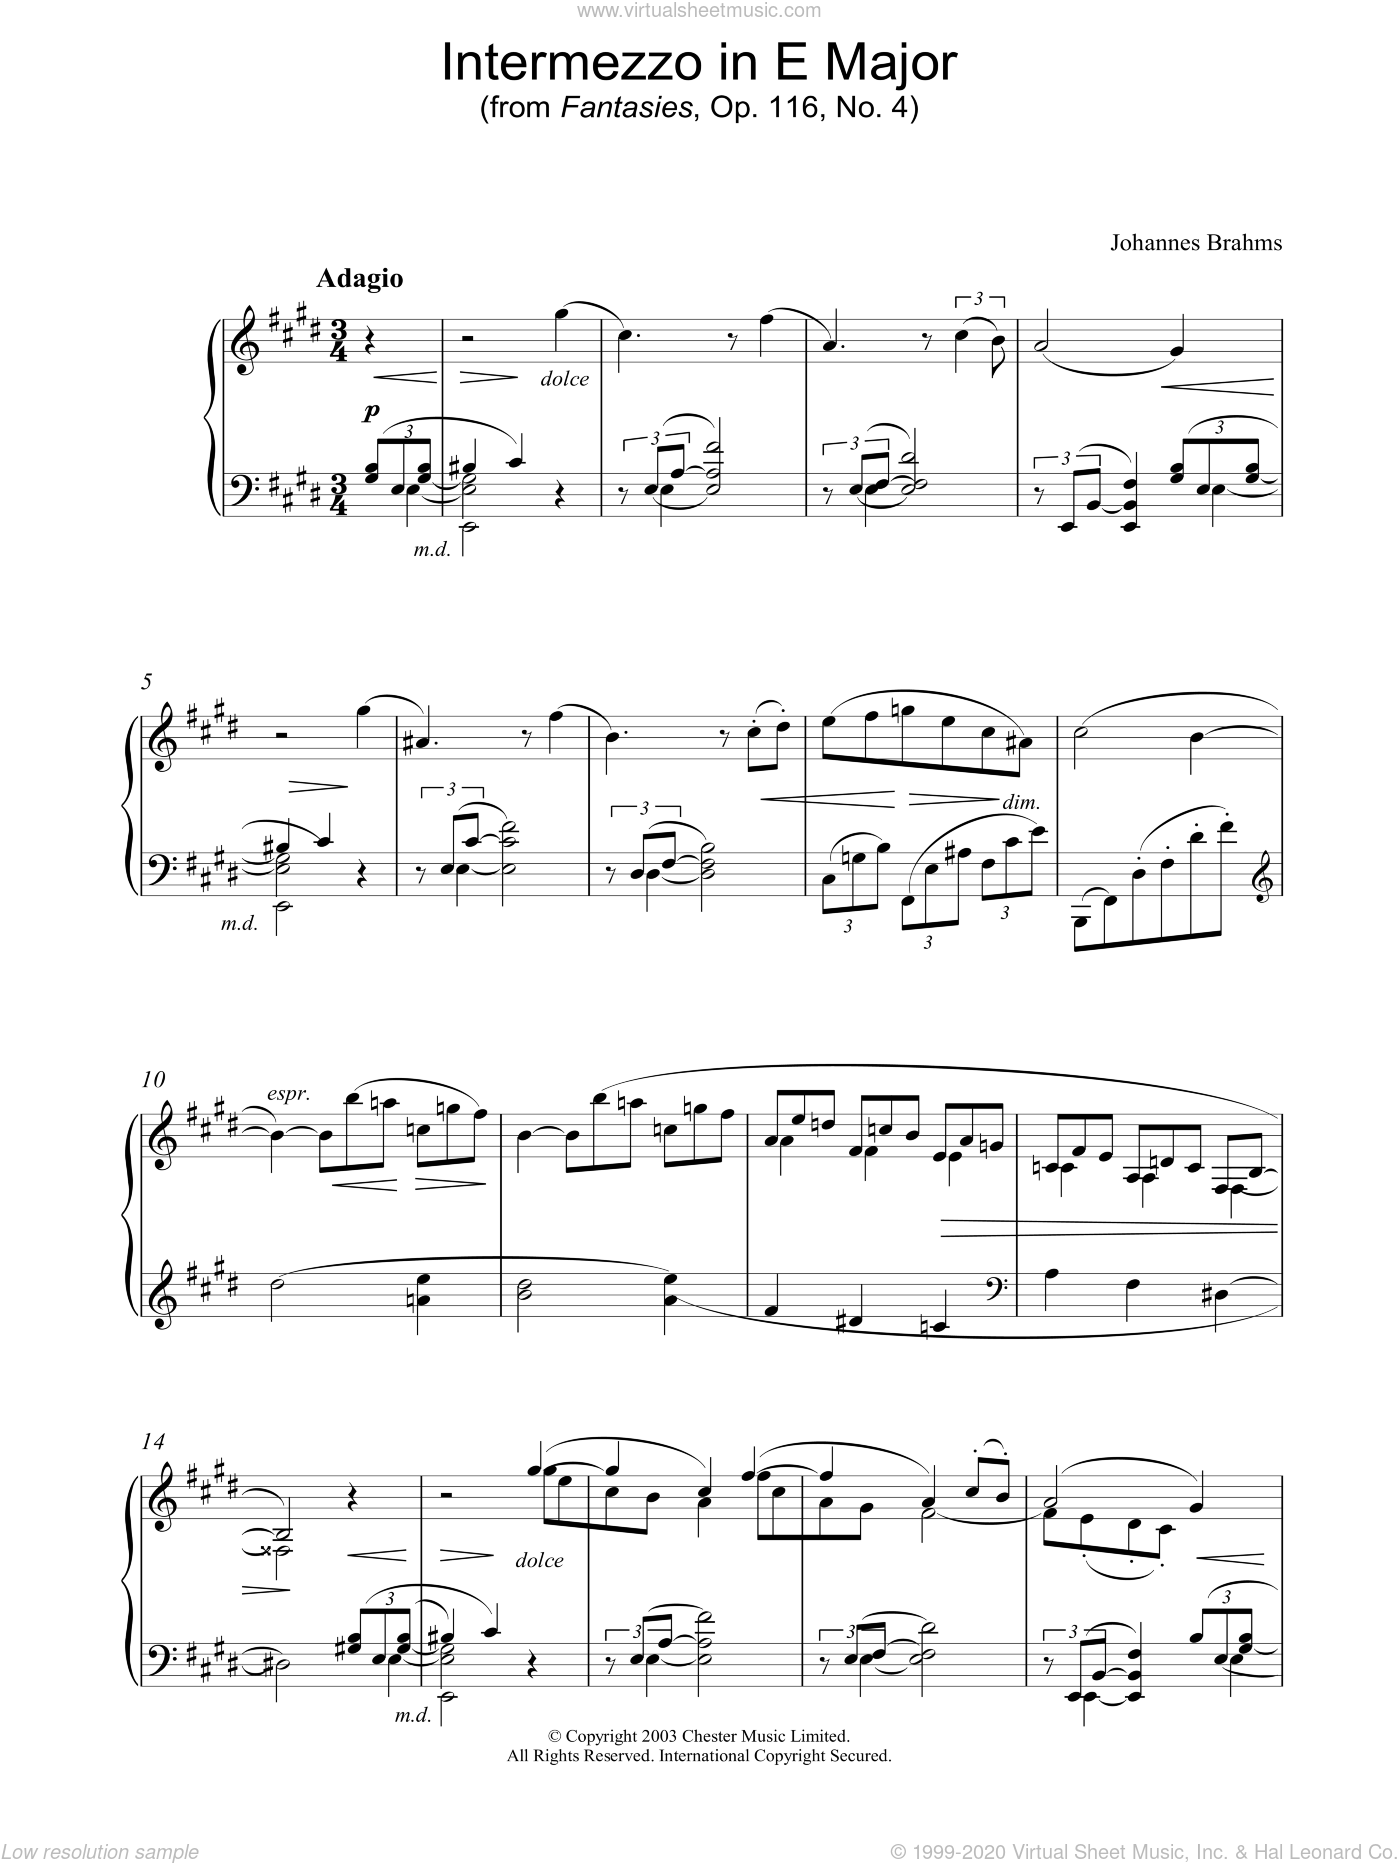 Intermezzo in E Major (from Fantasies, Op. 116, No. 4) sheet music for piano solo by Johannes Brahms